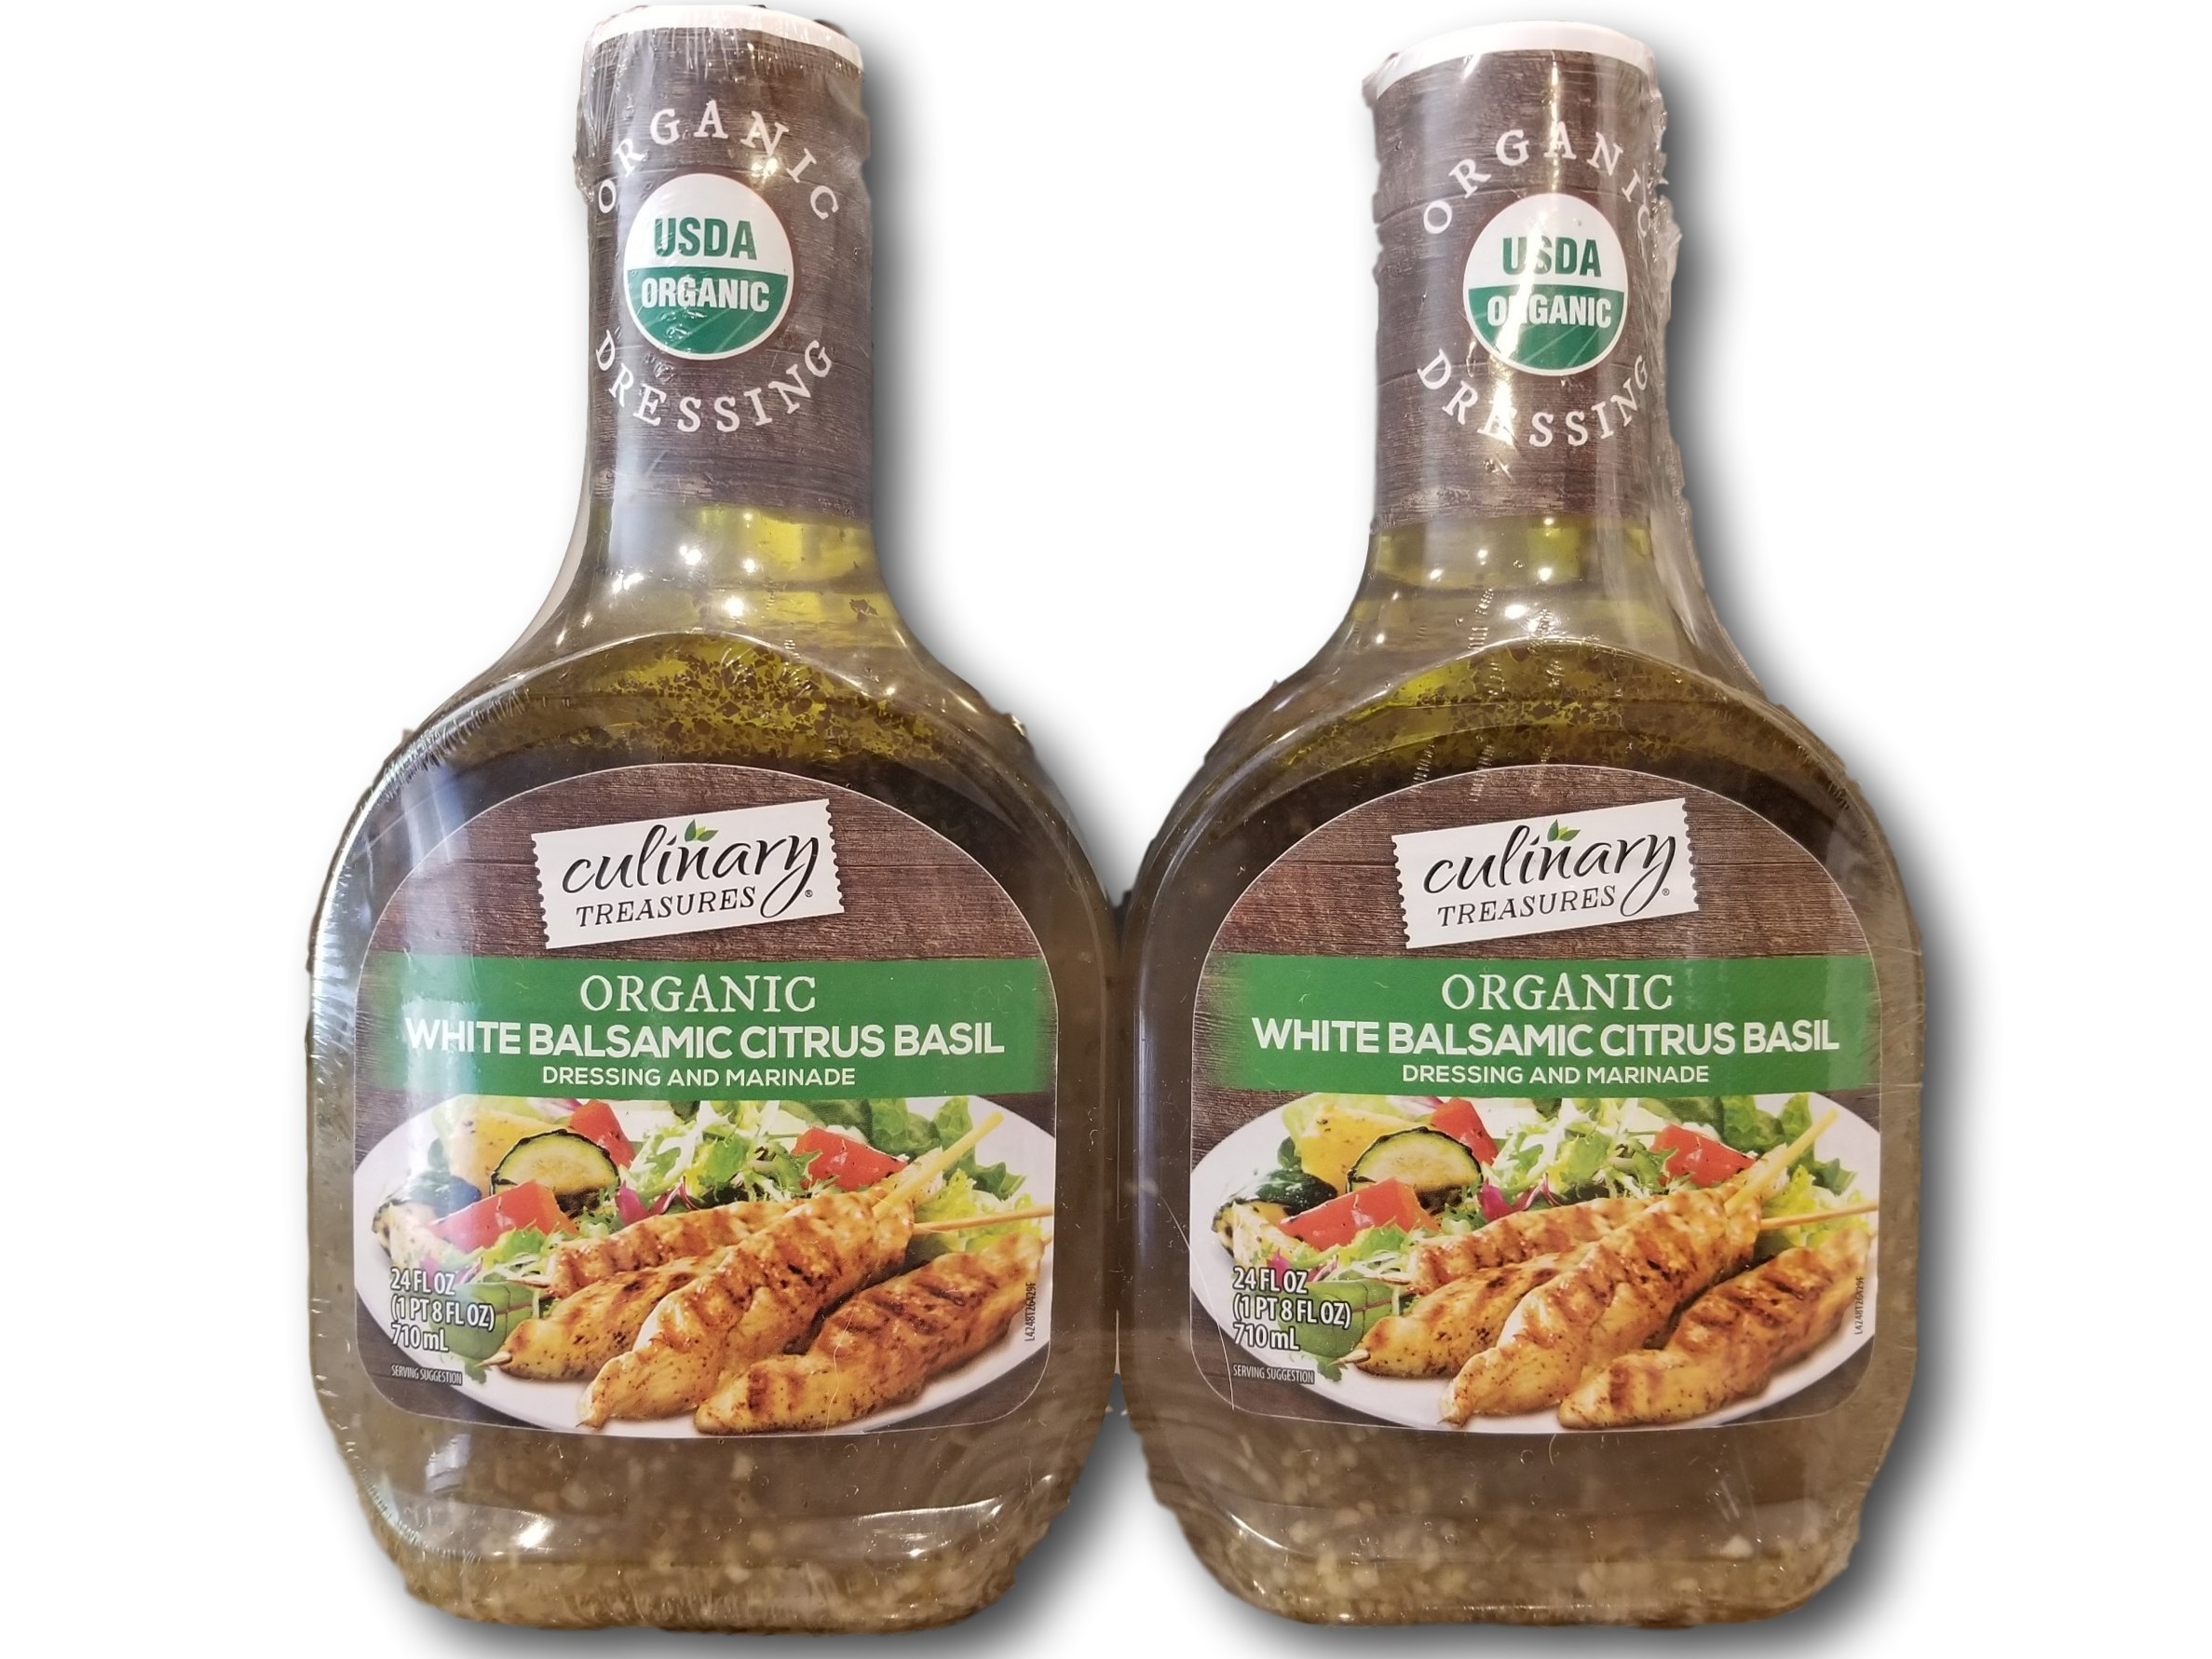 Culinary Treasures Organic White Balsamic Citrus Basil Dressing, 24 fl oz, Pack of 2 Bottles 1 Organic White Balsamic Citrus Basil Dressing Great for pasta salads A Delicious Marinade